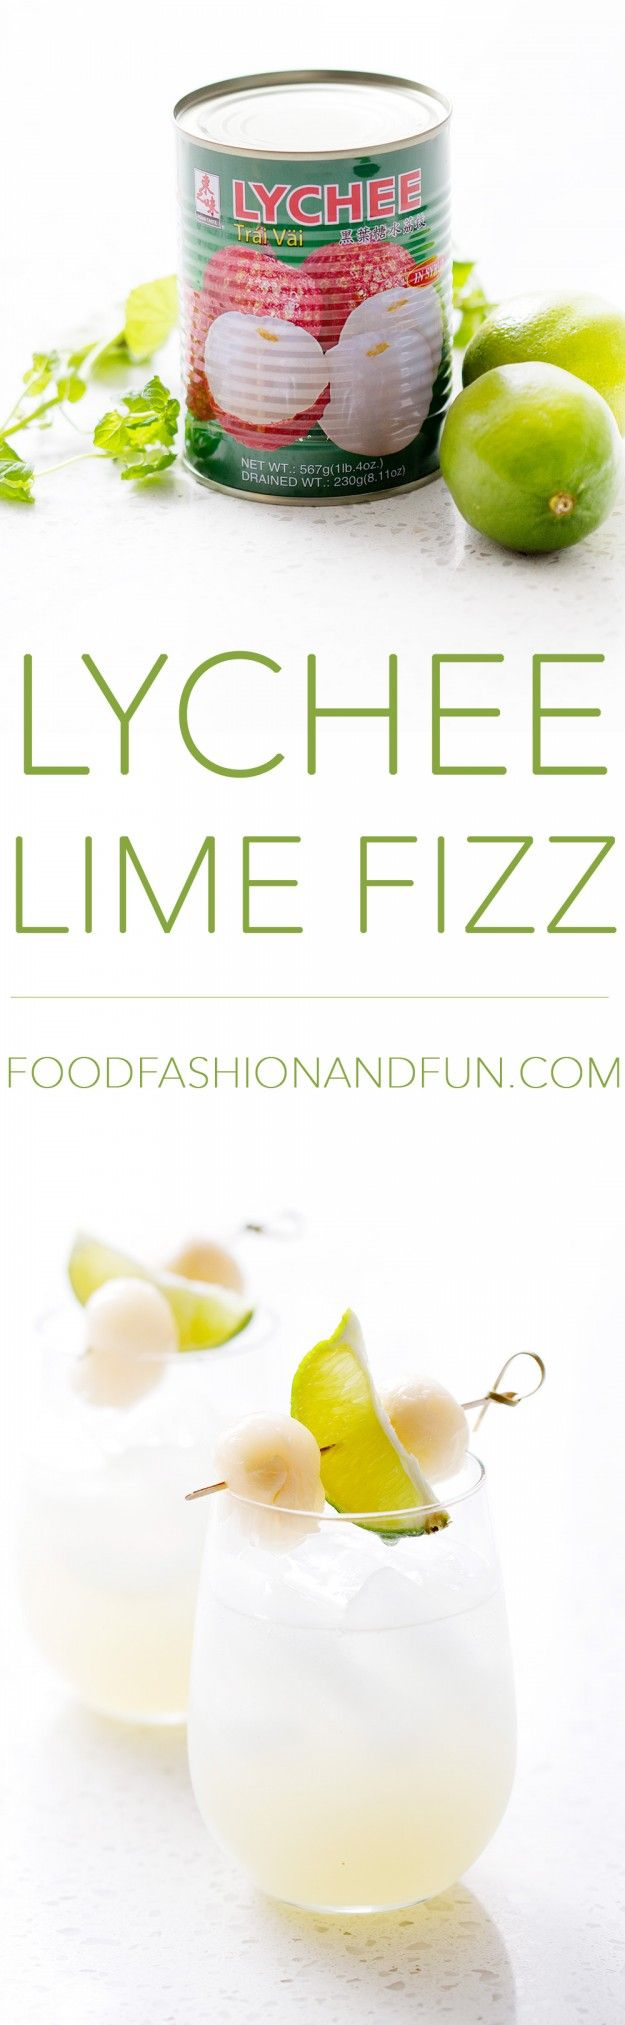 My husband calls this cocktail 'The Lychee Meringue.' He said it reminds him of a meringue because it's light with subtle flavors of lychee and lime. It's really a perfect comparison. This is a lig…